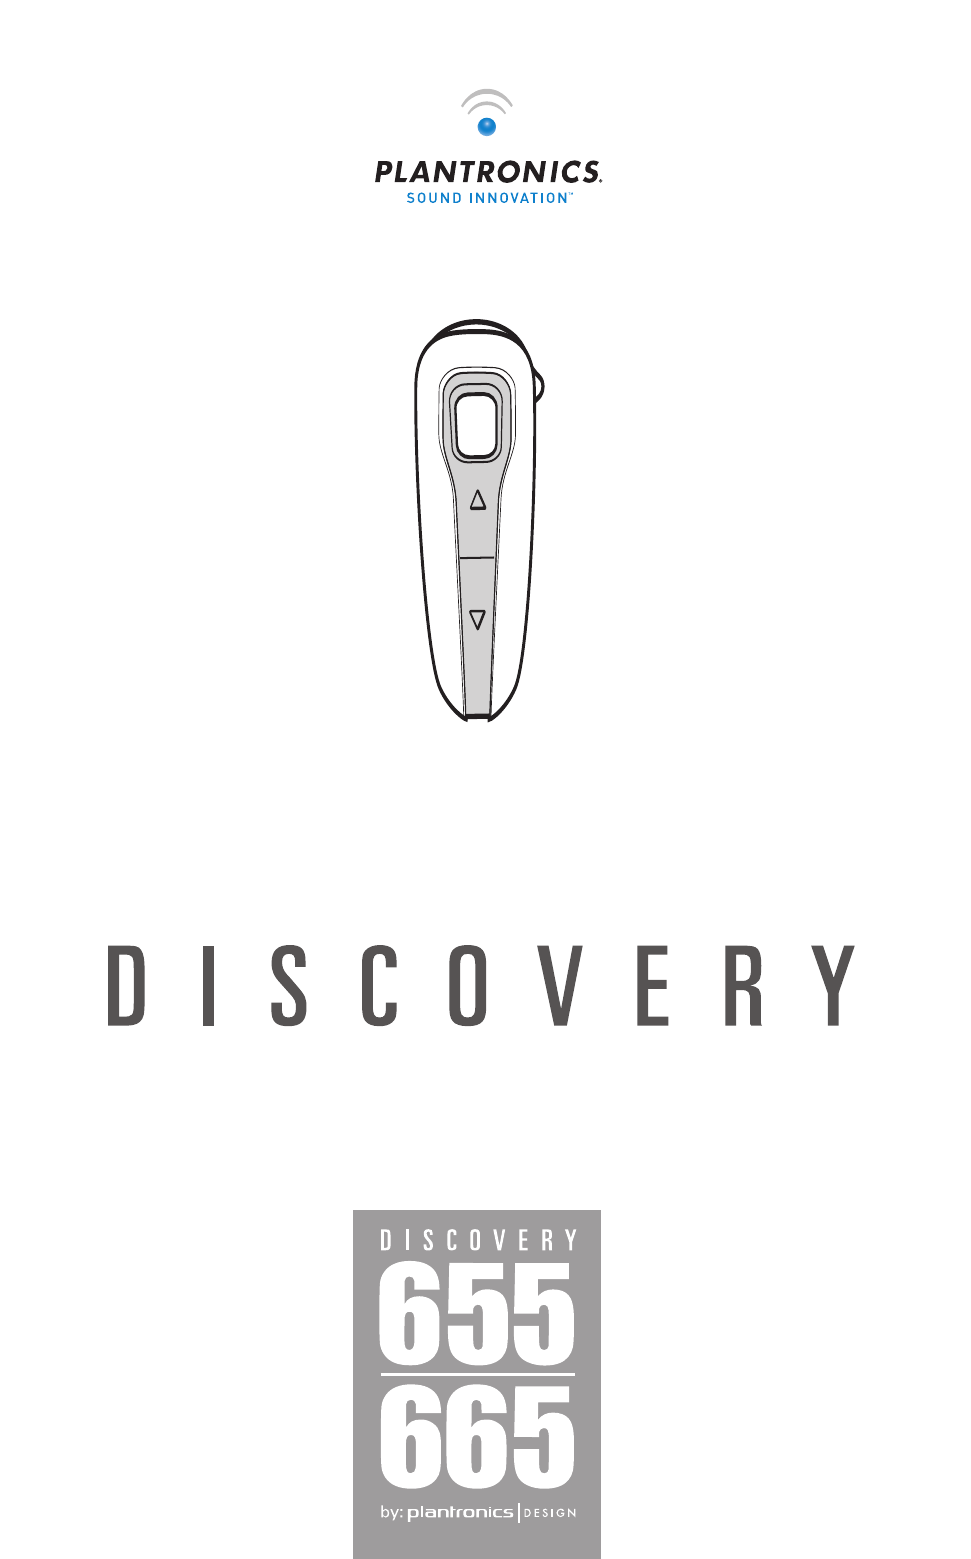 plantronics discovery 665 user s manual free pdf download 16 pages rh manualagent com Plantronics Explorer 233 Manual Plantronics Bluetooth Device